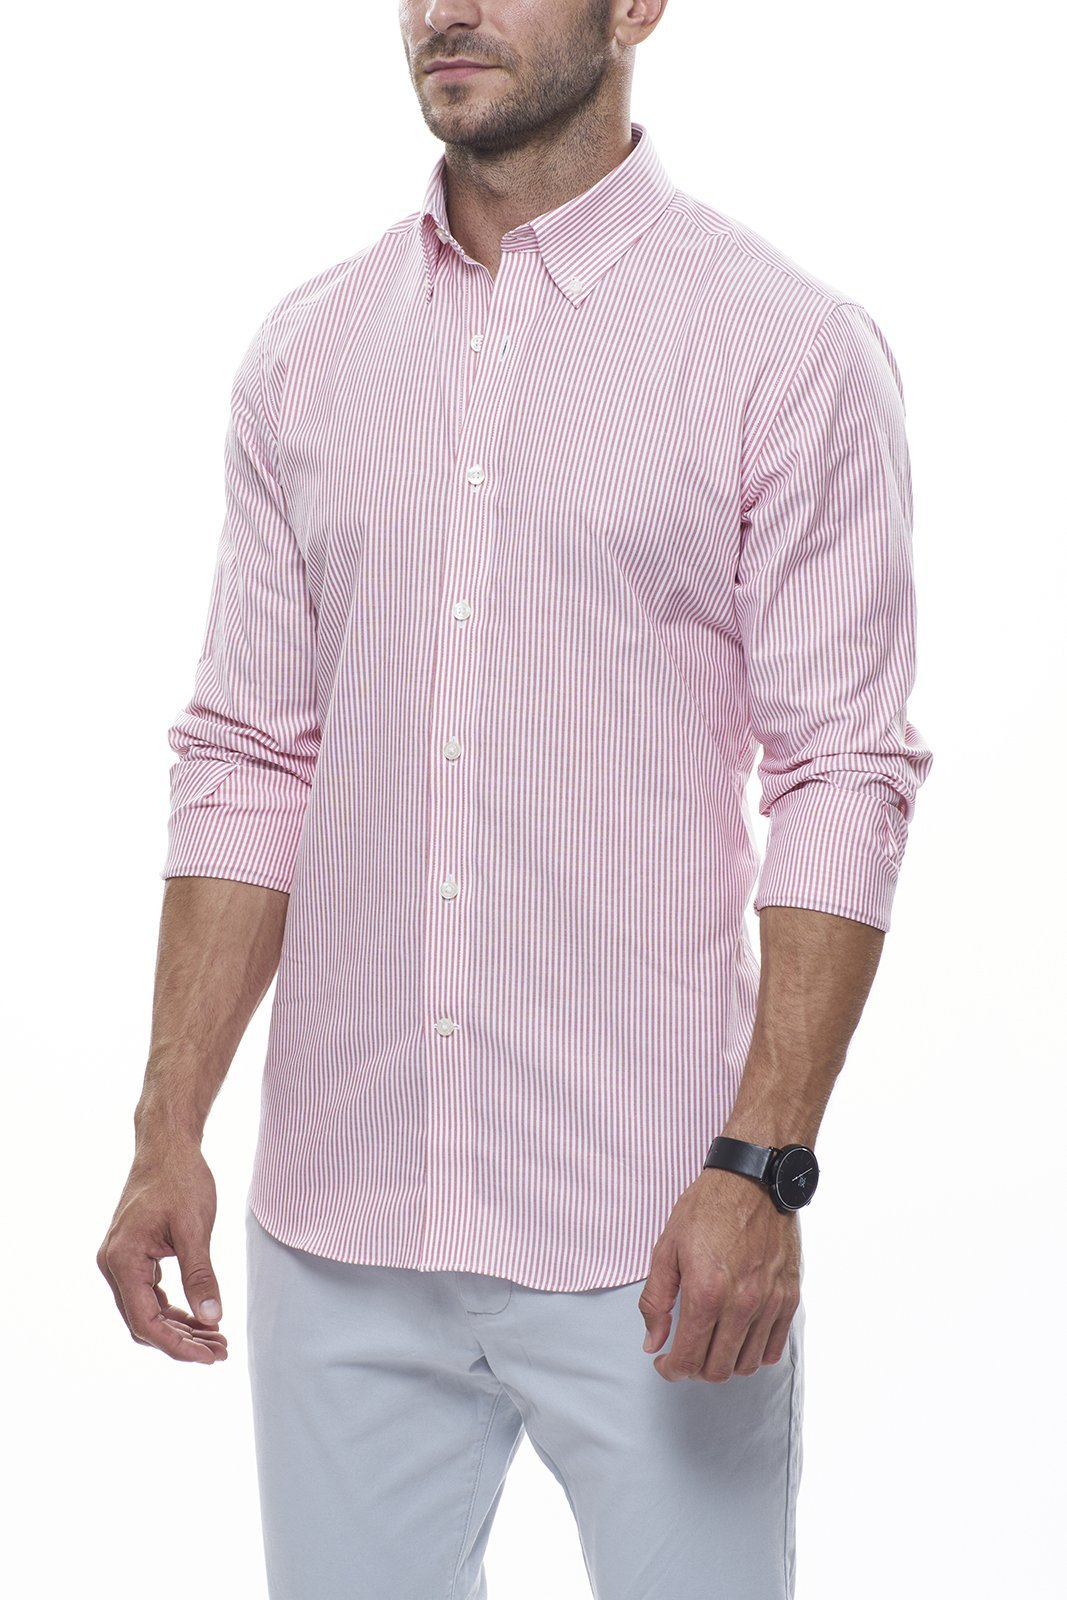 Brick Striped Oxford: Button-Down Collar, Long Sleeve